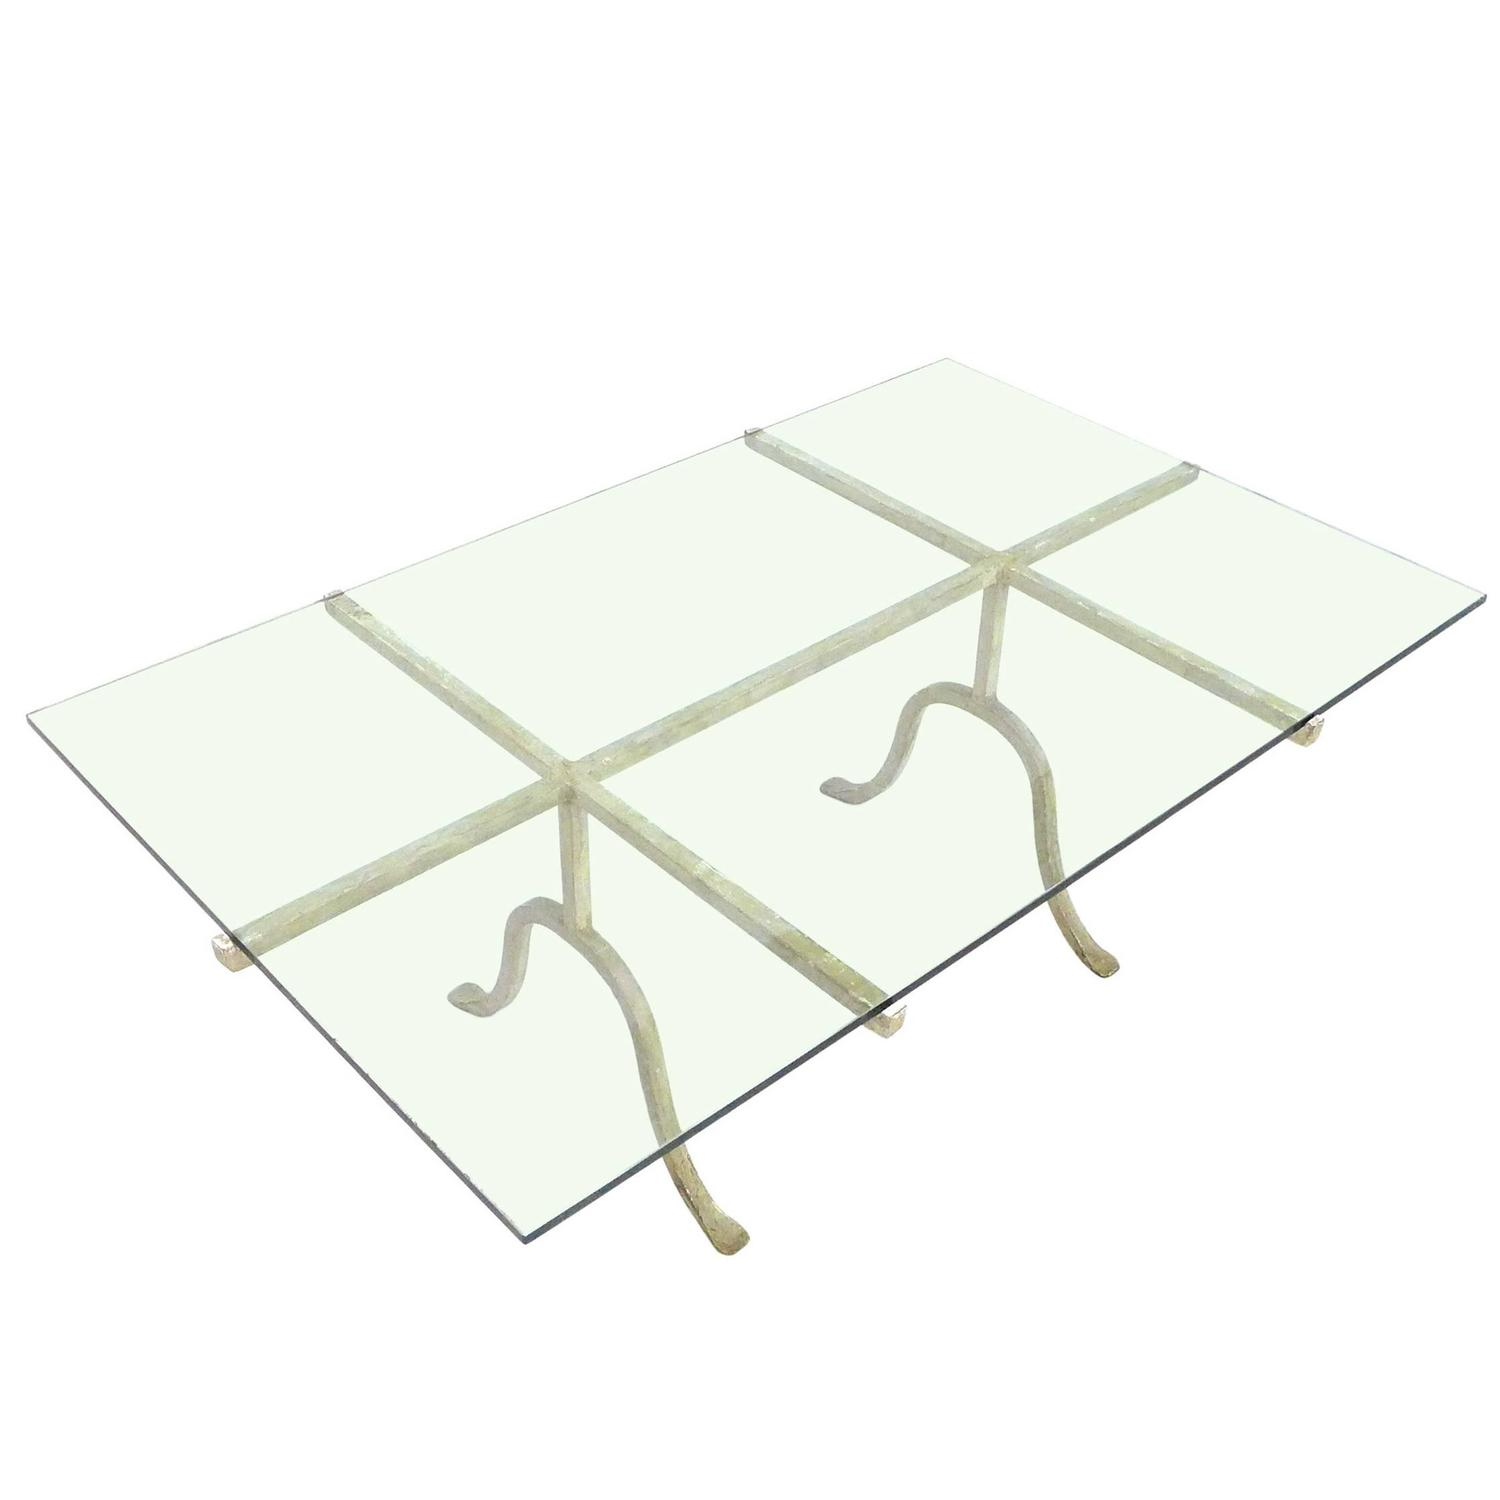 Wrought Iron And Glass Coffee Table At 1stdibs